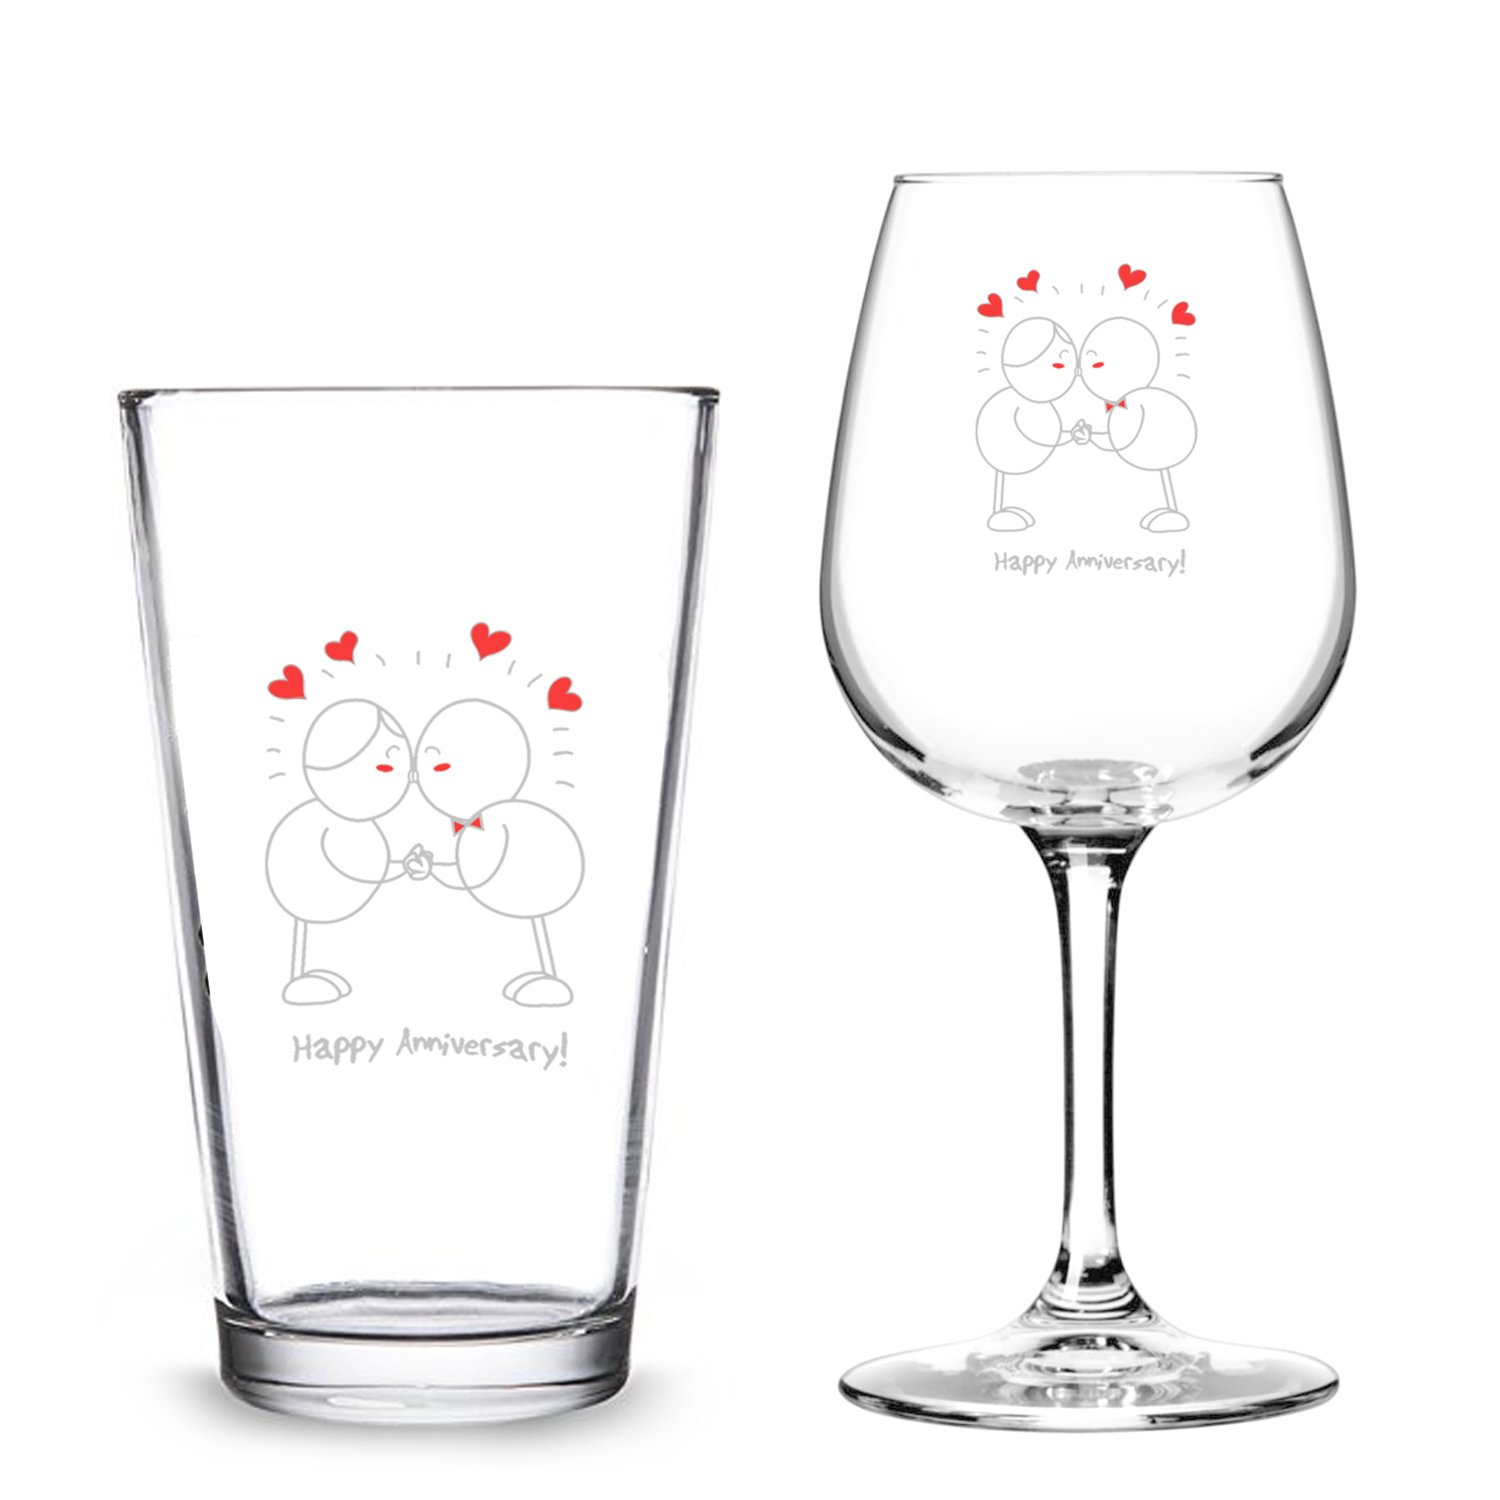 Happy Anniversary! Beer Pint and Wine Glass- Romantic Glassware Gift Set - Made in USA – Cool Present Idea for Wedding Anniversary, Married Couples, Him or Her, Mr. or Mrs.